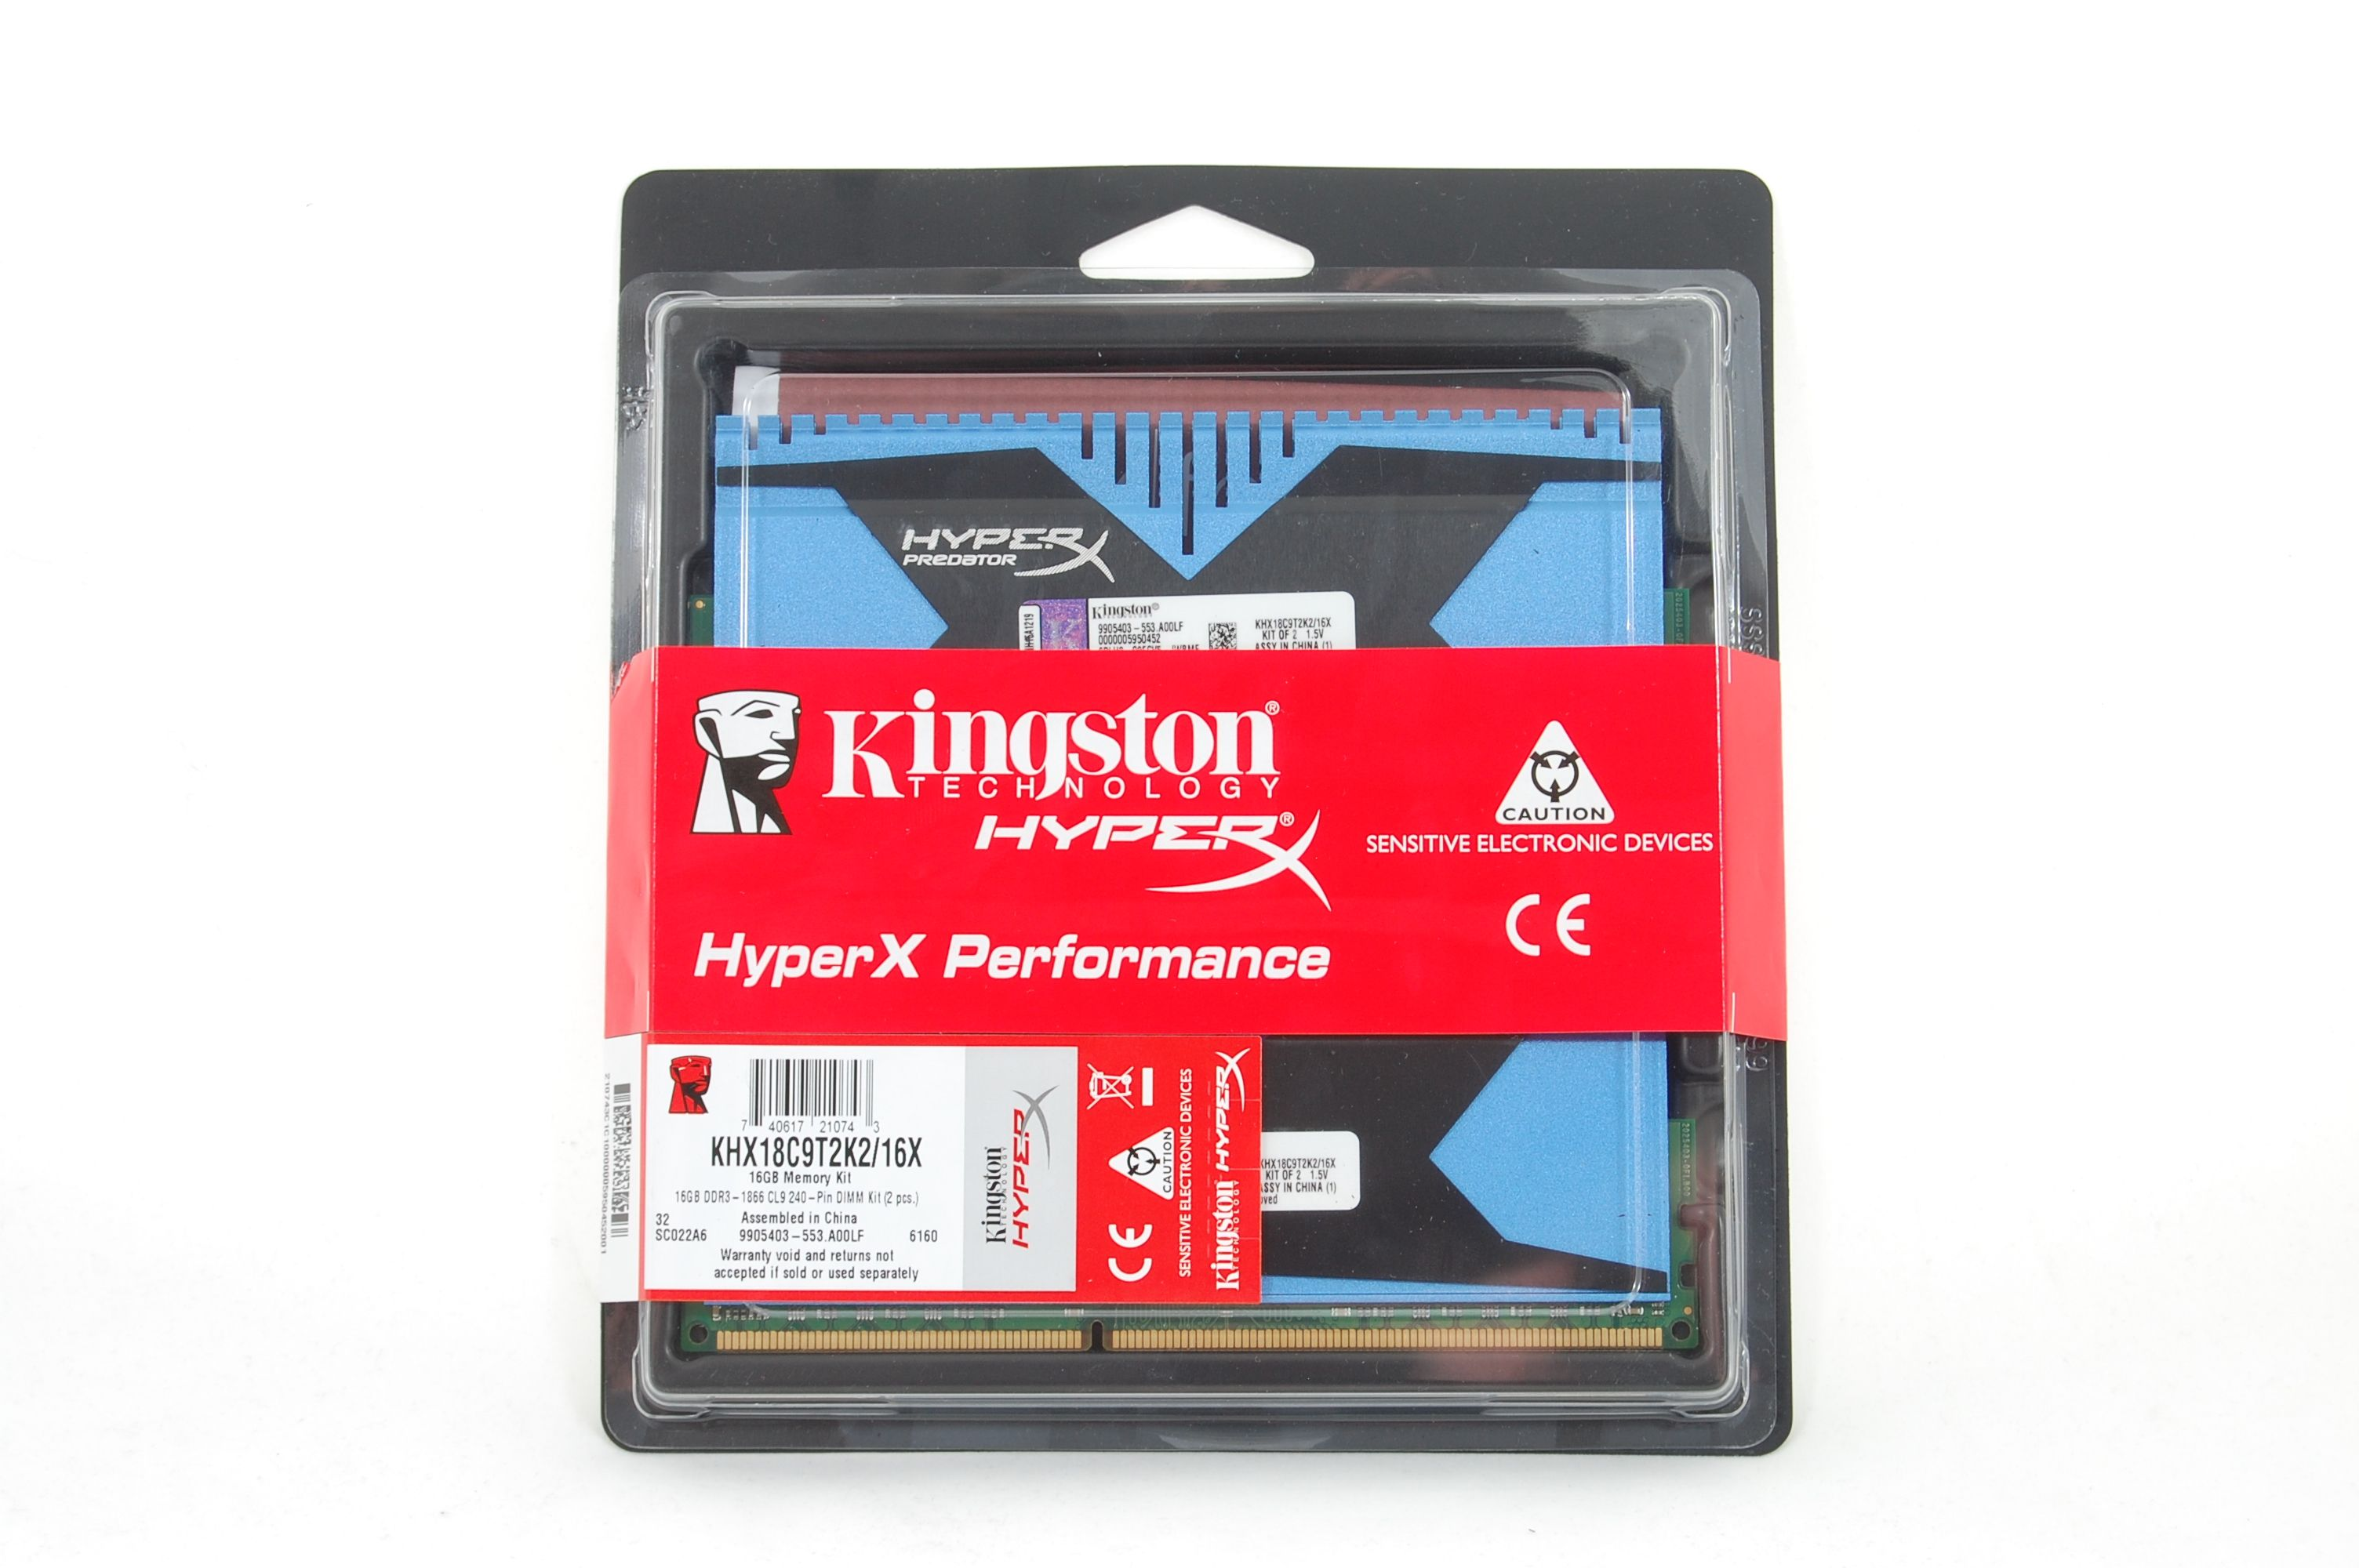 Kingston Predator Packaging